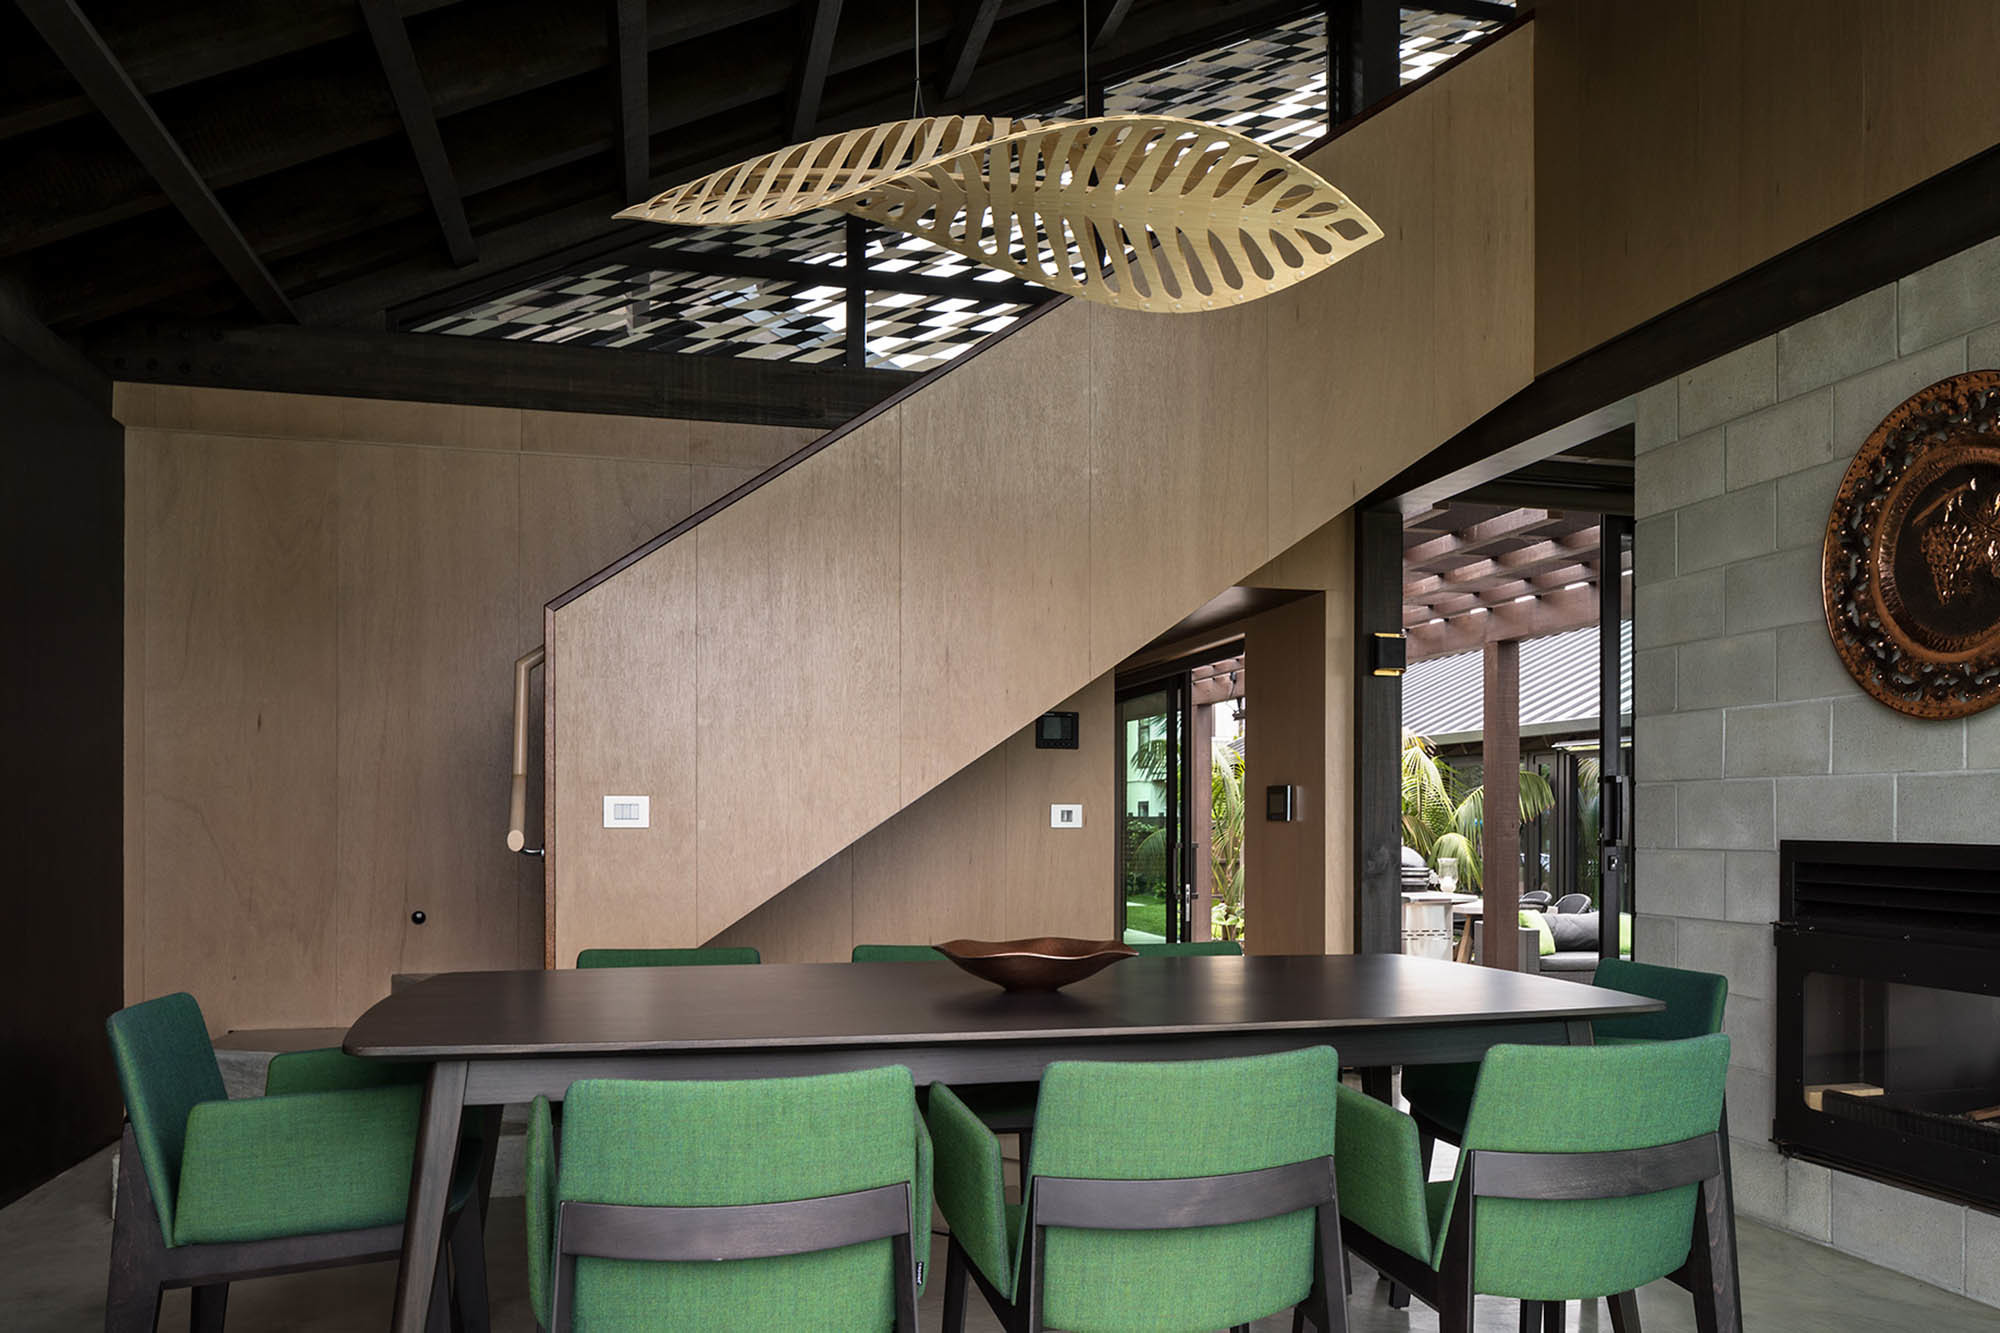 Navicula L 0006 David Trubridge Navicula 1500 Feature Bamboo Over Dinning Table Sustainable Light Fixture Photo Simon